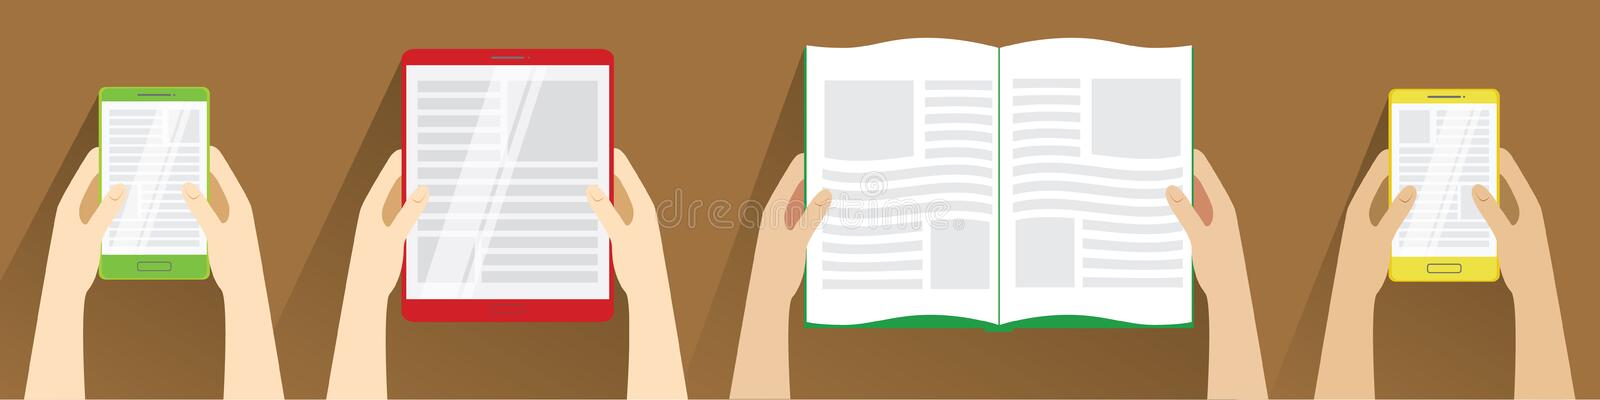 Hands holding open book, smartphones and tablet computer. Top view. royalty free illustration